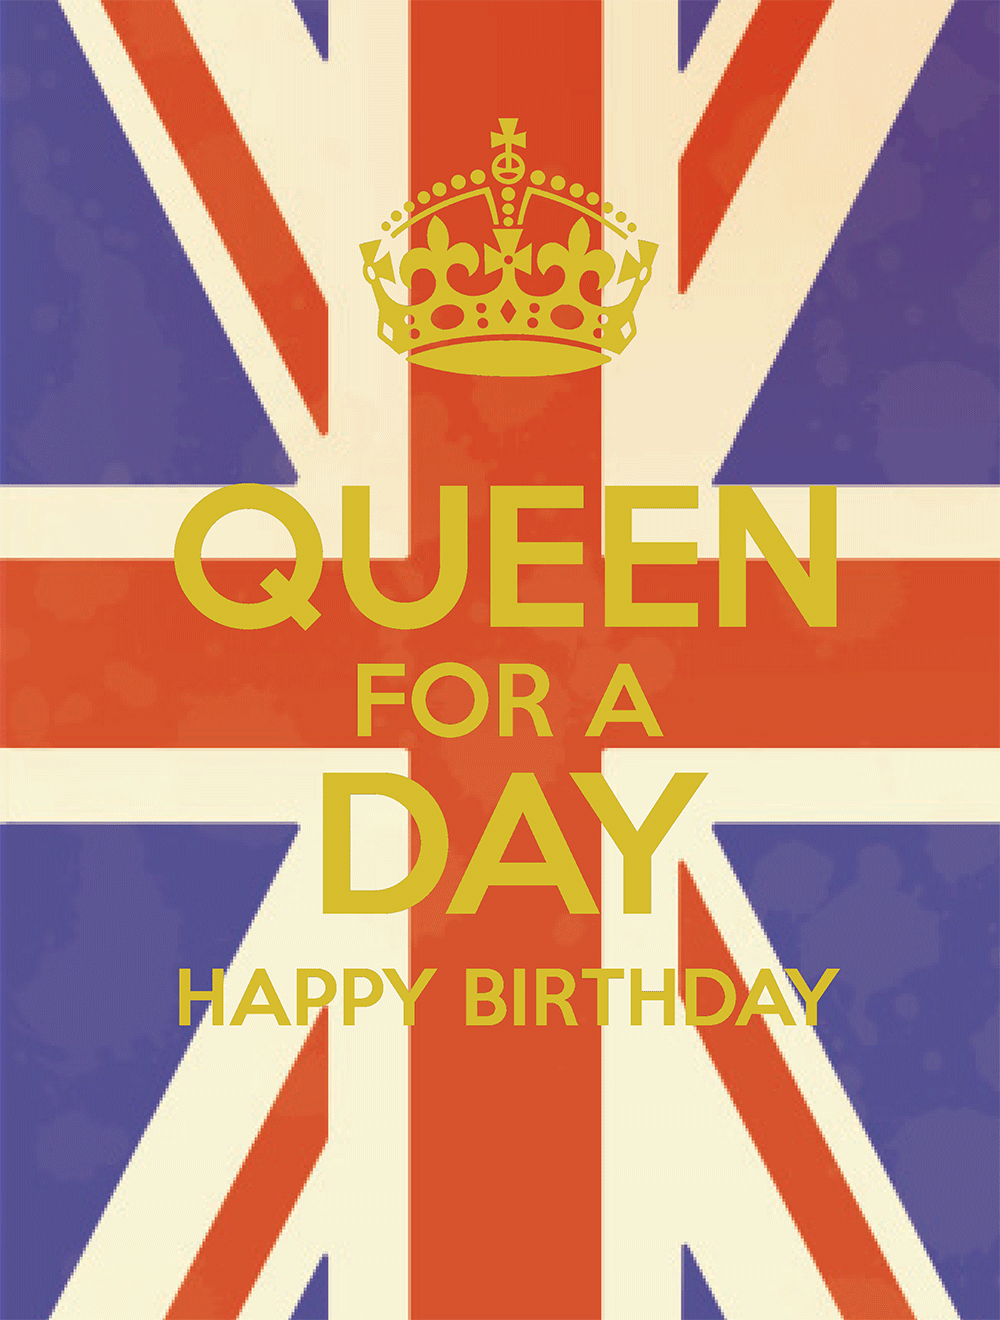 British Birthday Cards - Greeting & Photo Cards | Zazzle |British Expressions Happy Birthday